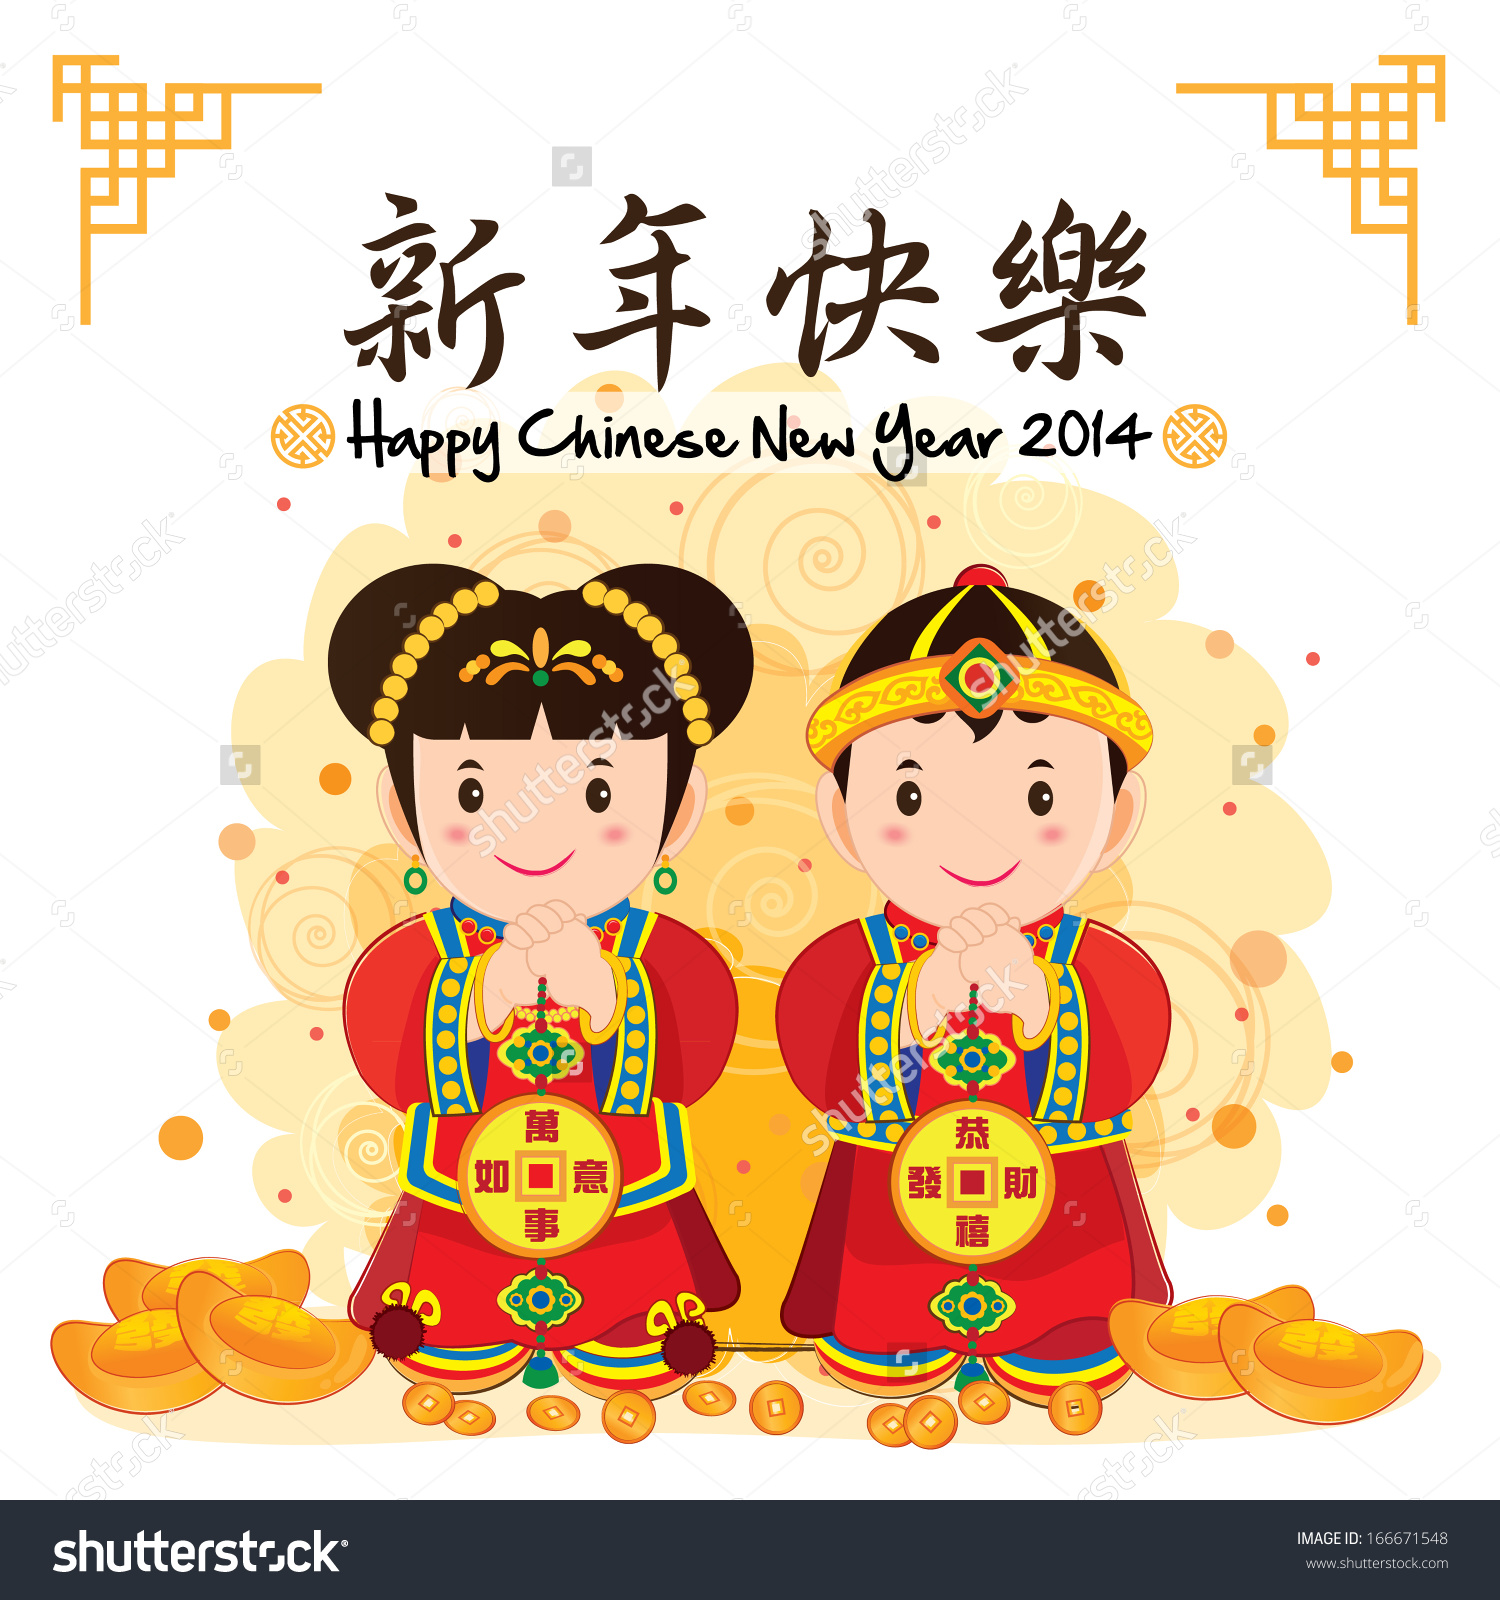 Chinese New Year Greeting Children Cute Stock Vector 166671548.